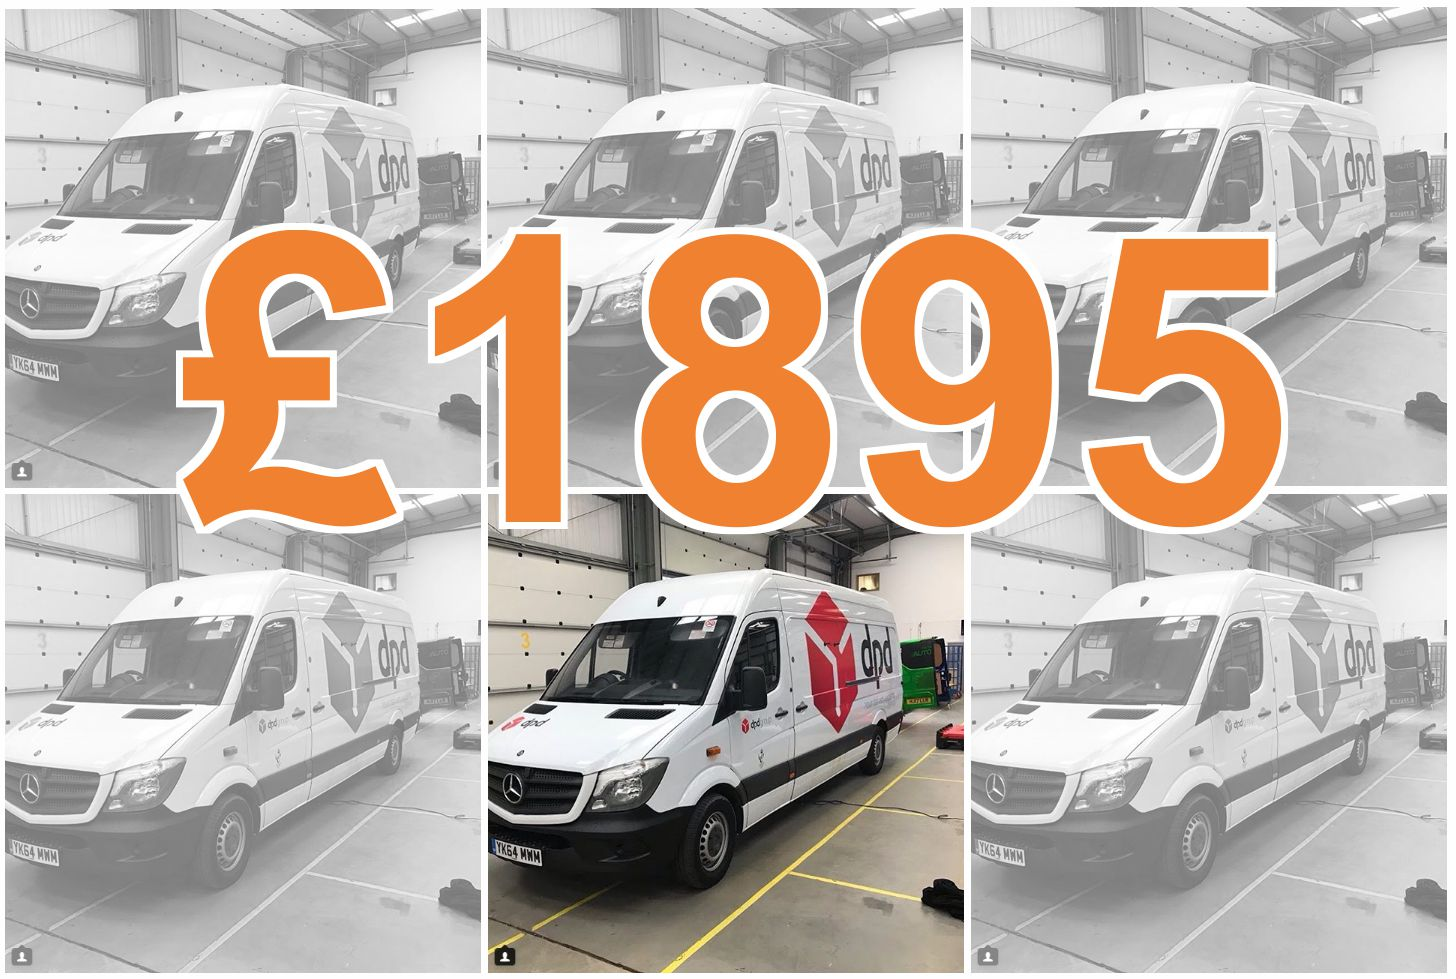 Our £1895 Transit Van Wrap Offer, is flying off the shelves!